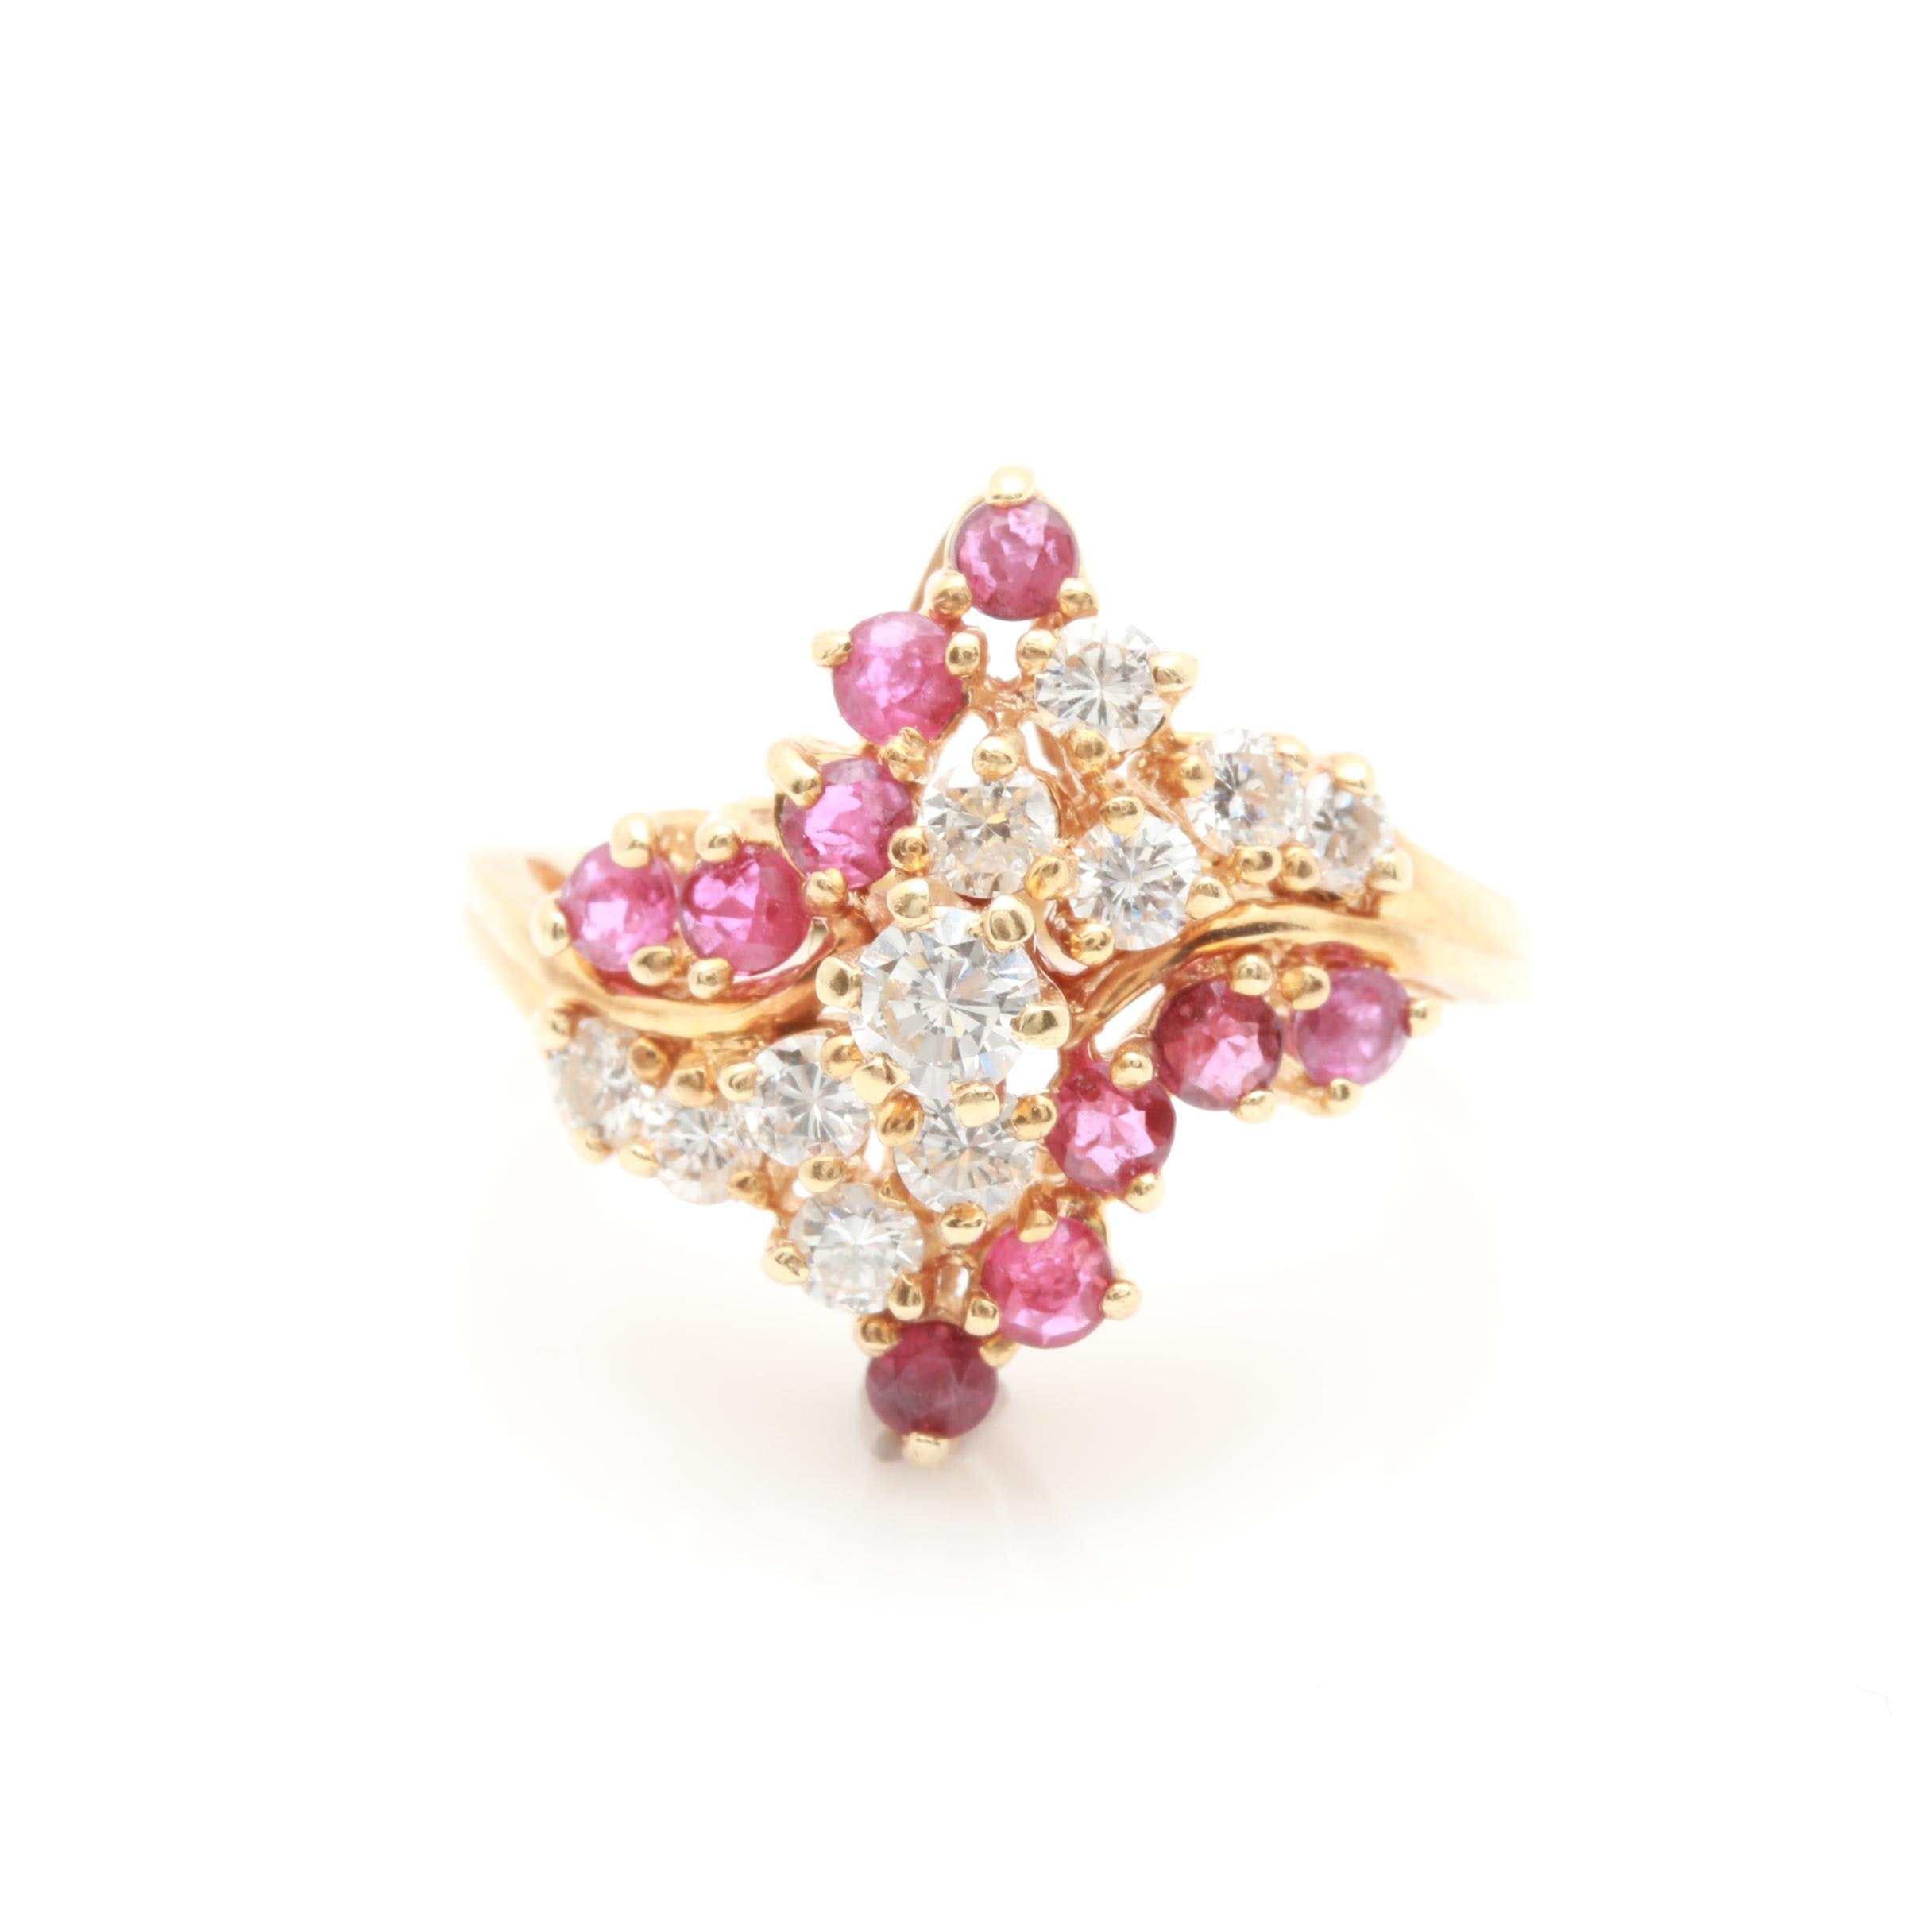 14K Yellow Gold Diamond and Ruby Bypass Ring